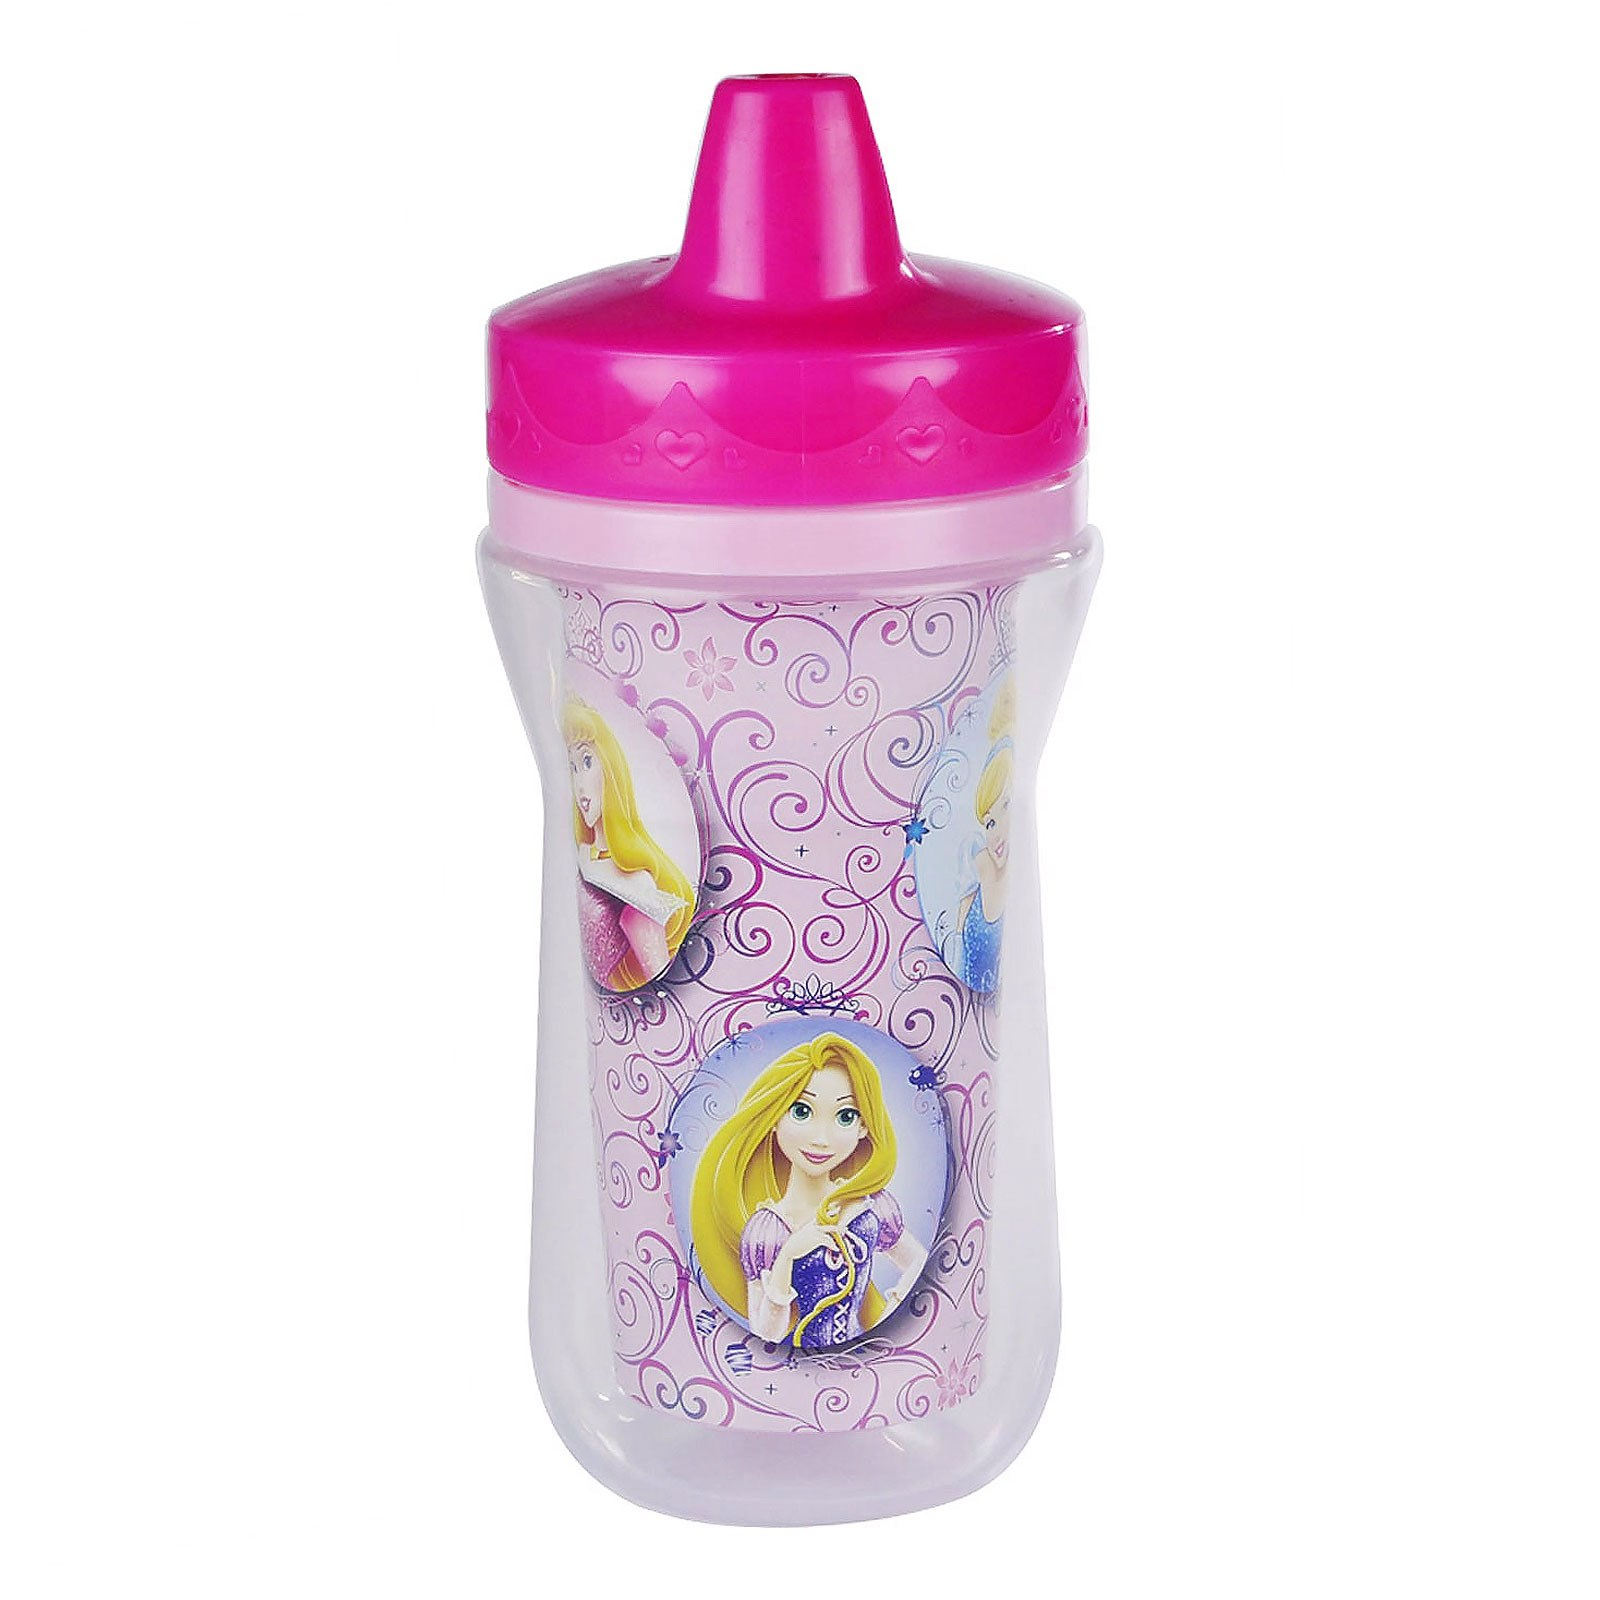 The First Years Disney Princess Insulated Sippy Cup 9